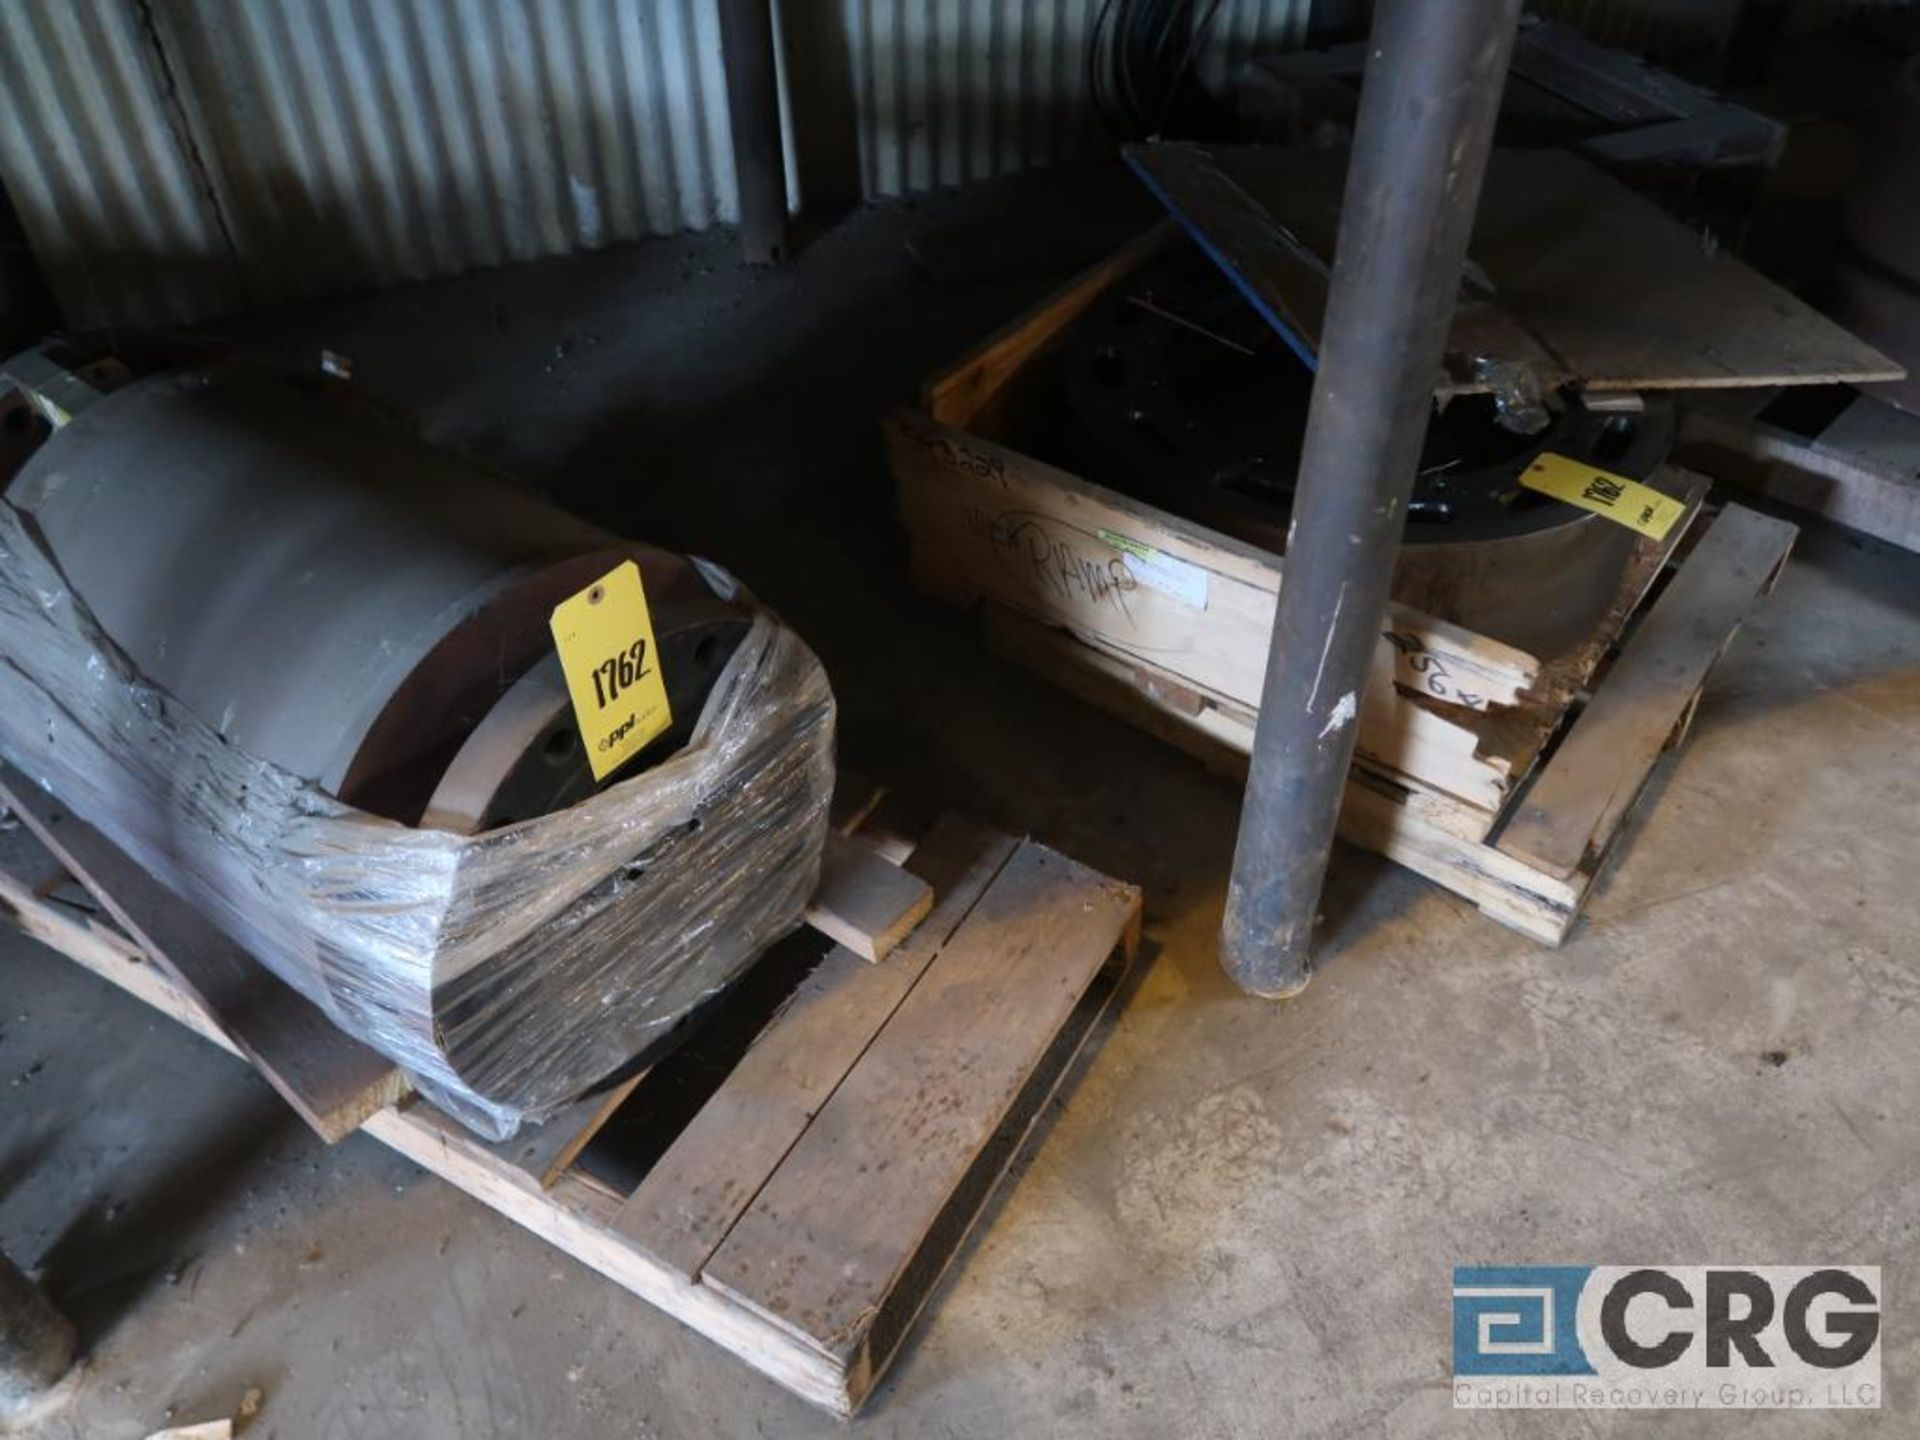 Lot of assorted motor, gear bearing housing, gear drive on metal rack (Next Bay Cage Area) - Image 10 of 16